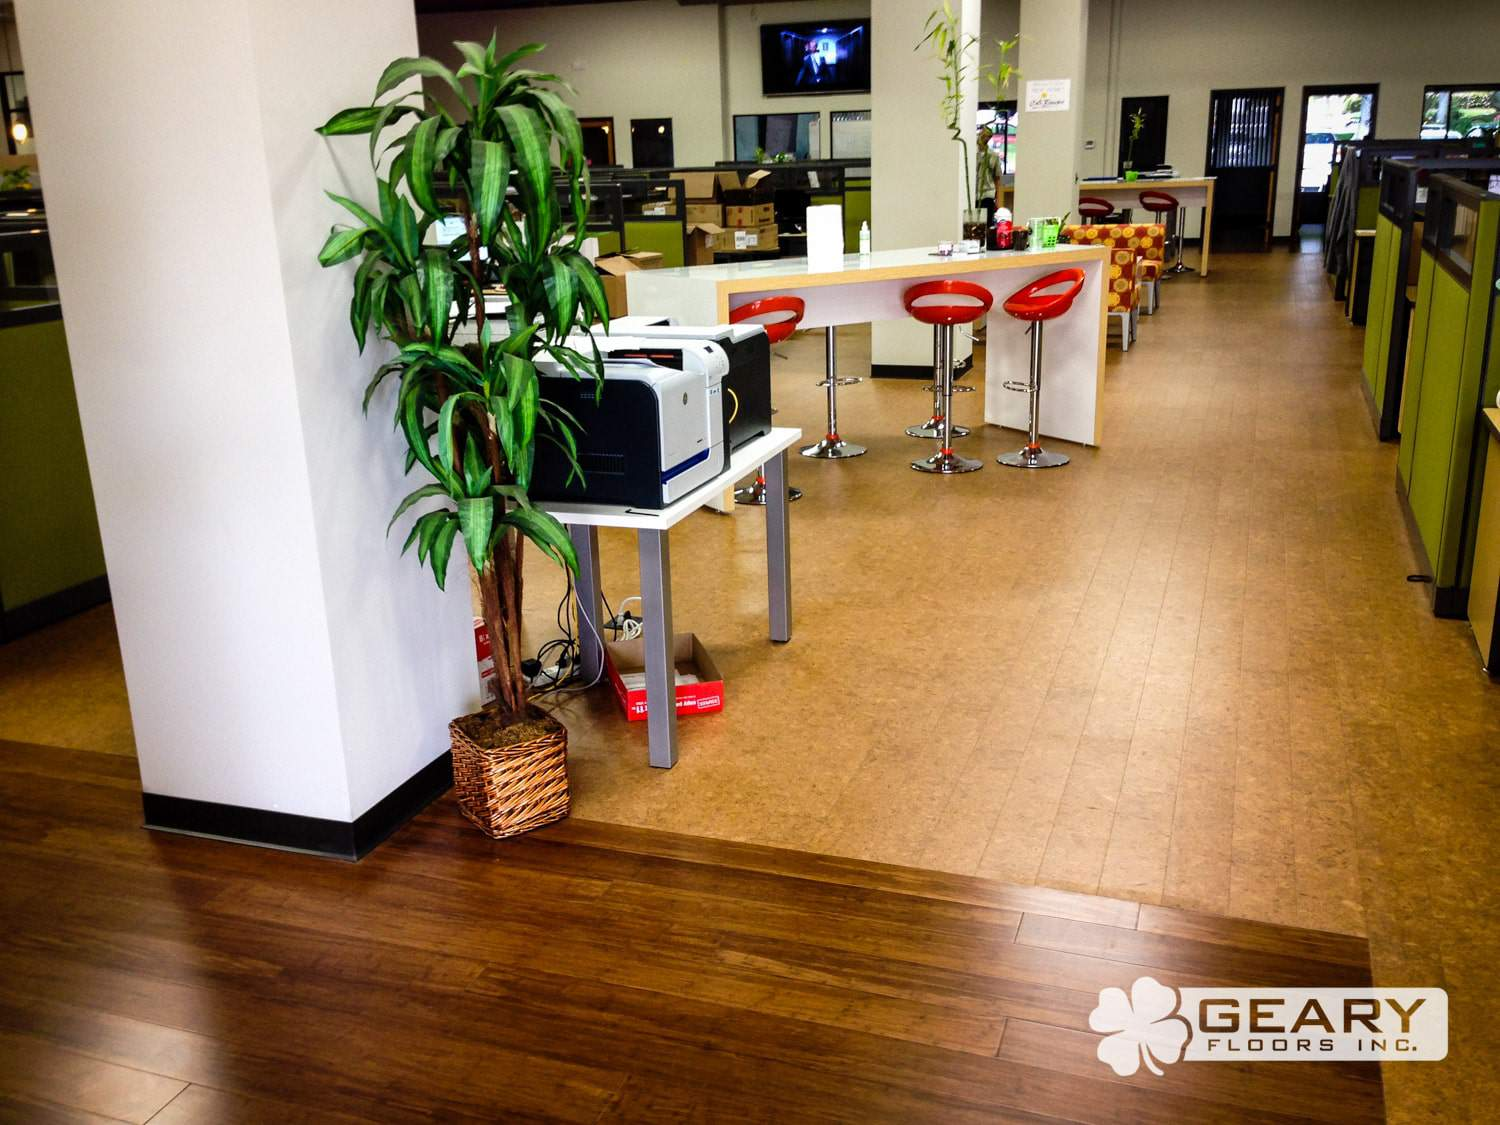 Geary Flooring Cali Bamboo Commercial Flooring IMG 0313 - Commercial Flooring - Hardwood Flooring San Diego